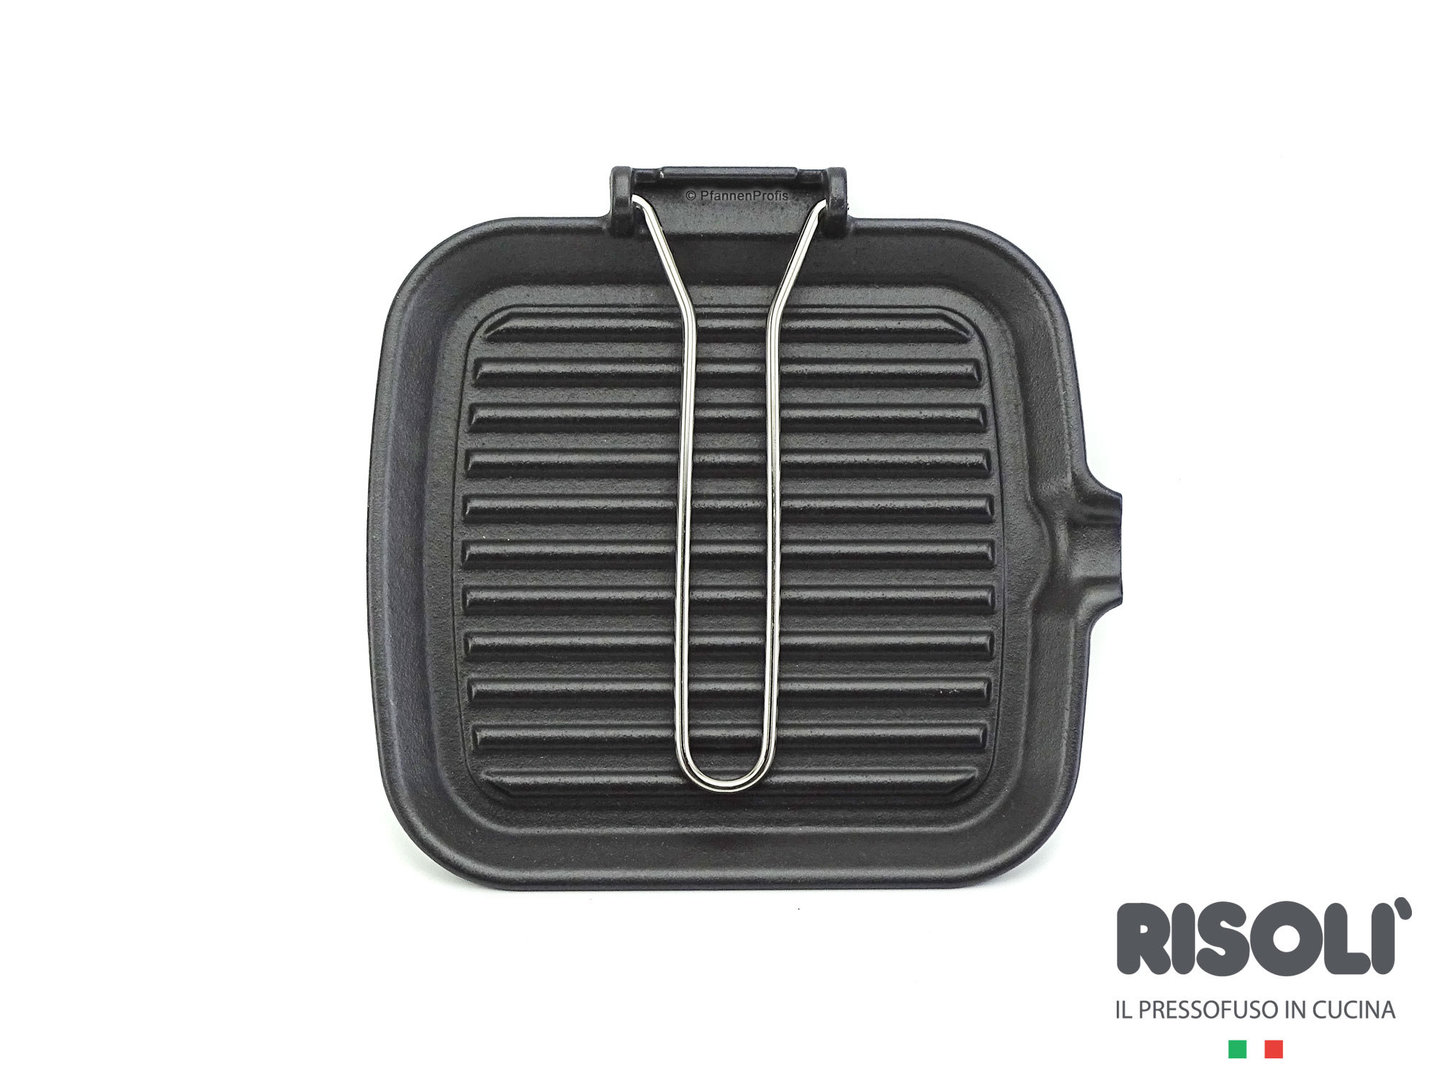 RISOLI cast iron grillpan 24 cm with foldaway handle